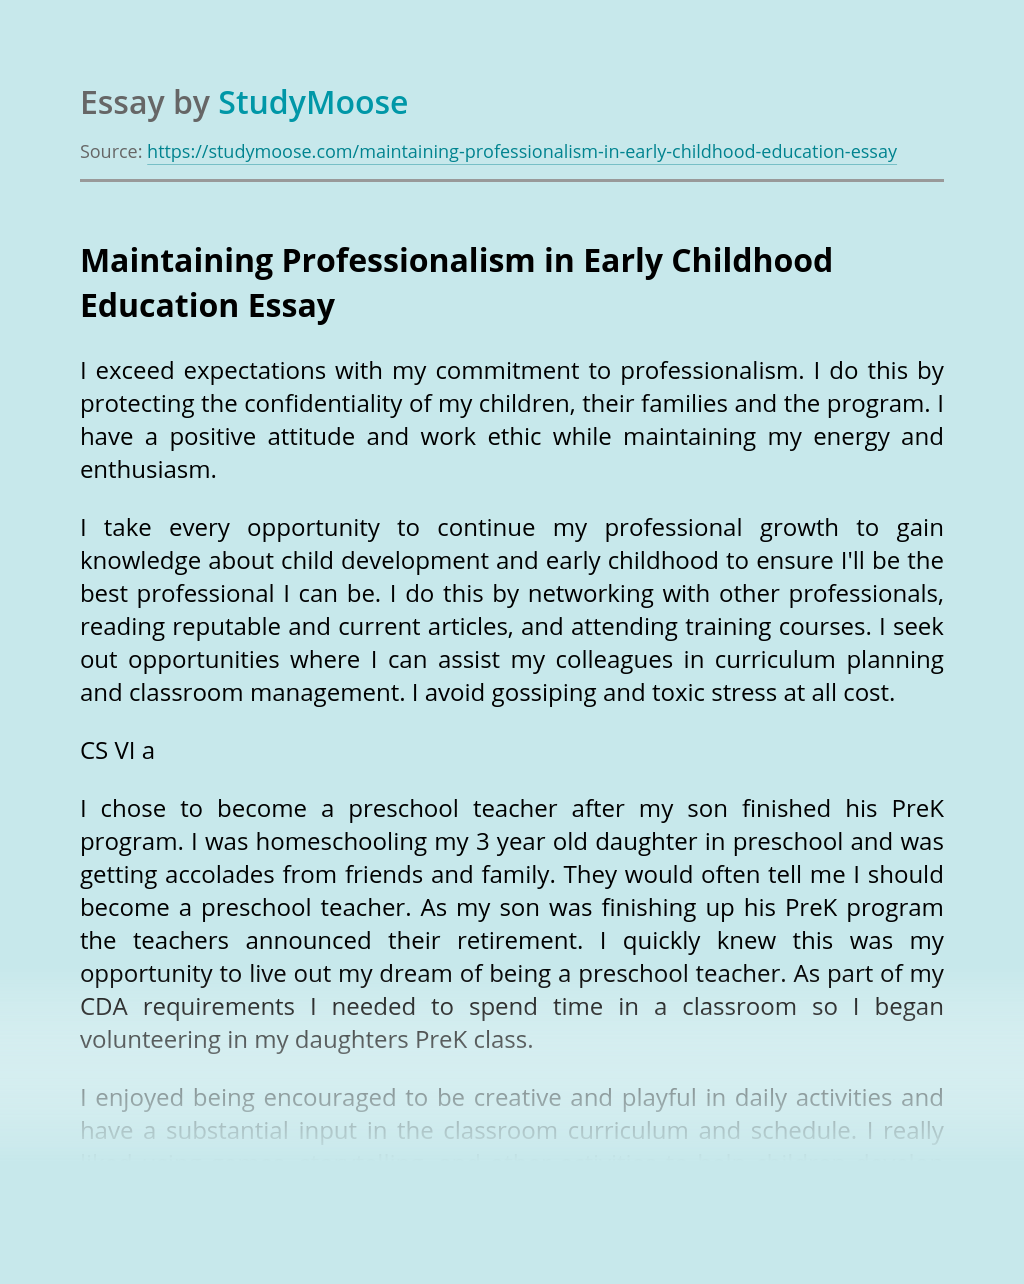 Maintaining Professionalism in Early Childhood Education